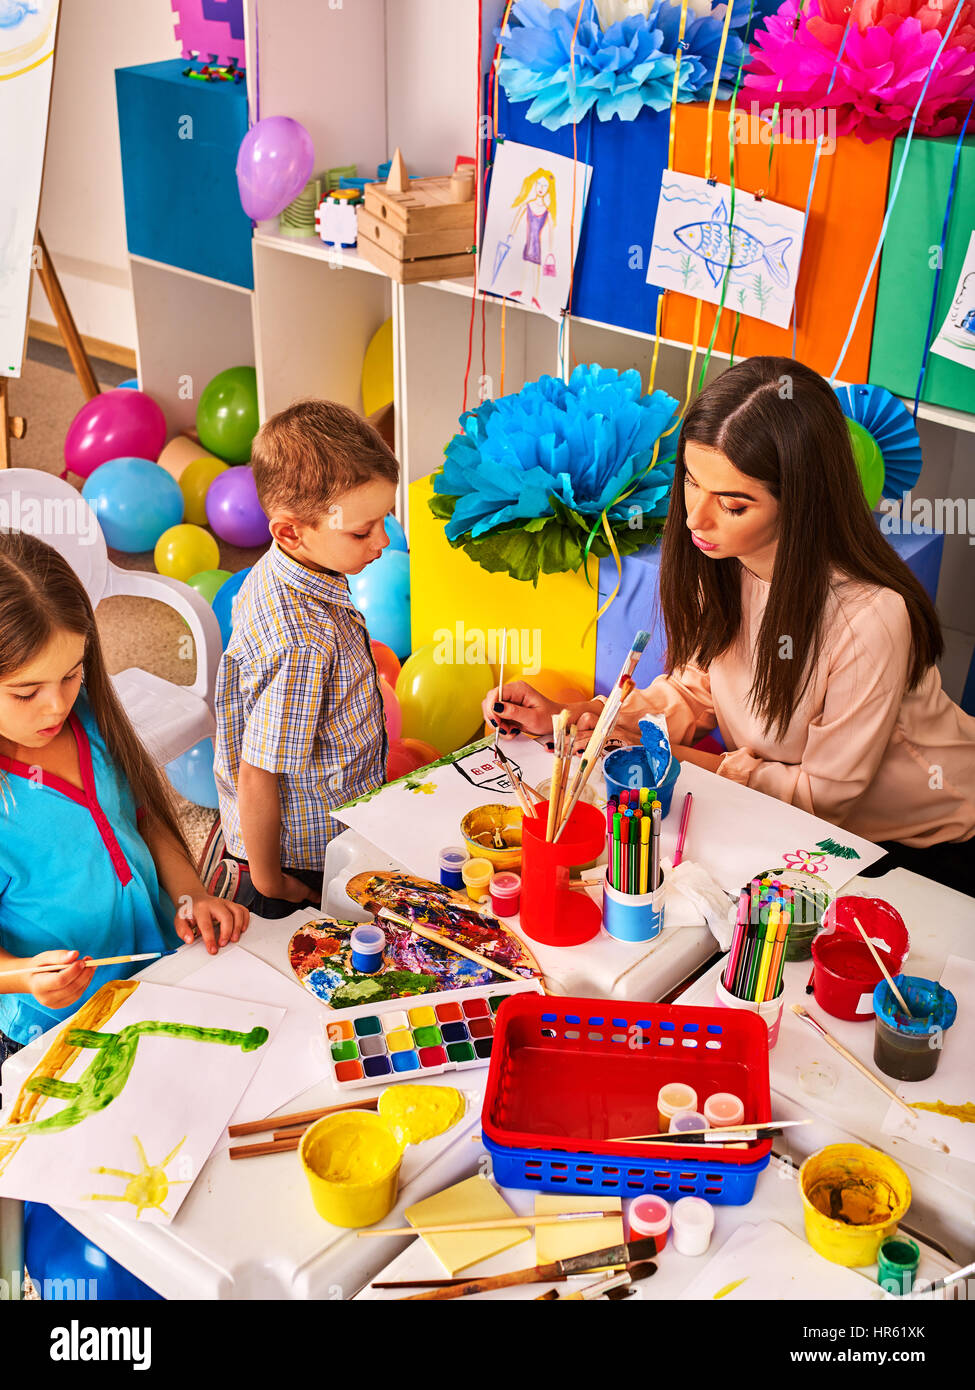 Childrens paint brushes and children painting and drawing in kids ...